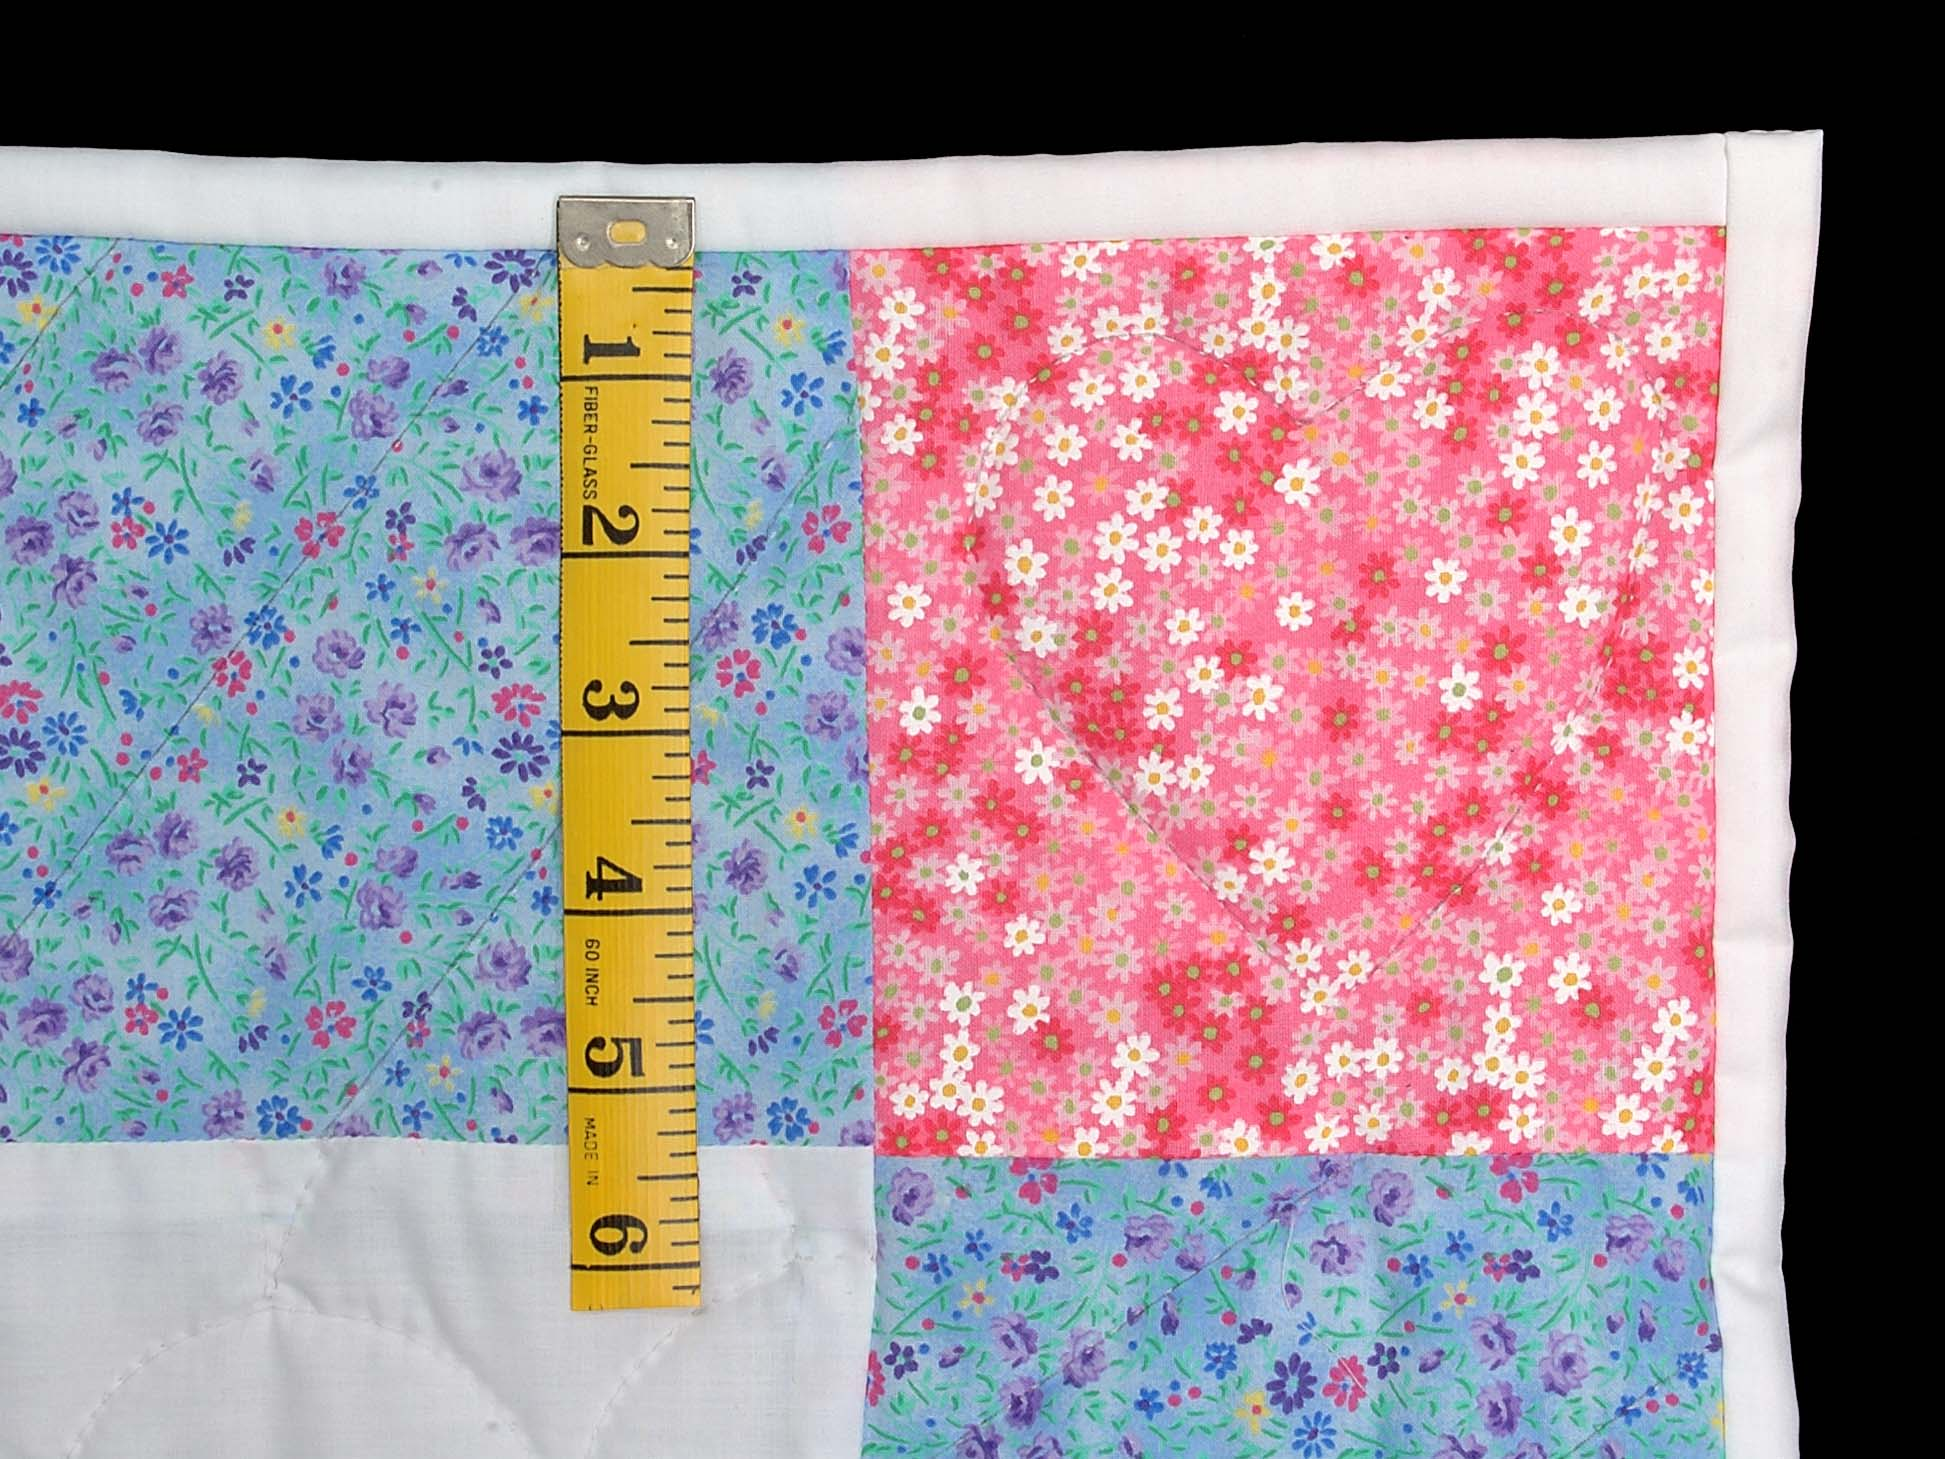 Aqua Blue and Hot Pink Noahs Ark Crib Quilt Photo 5